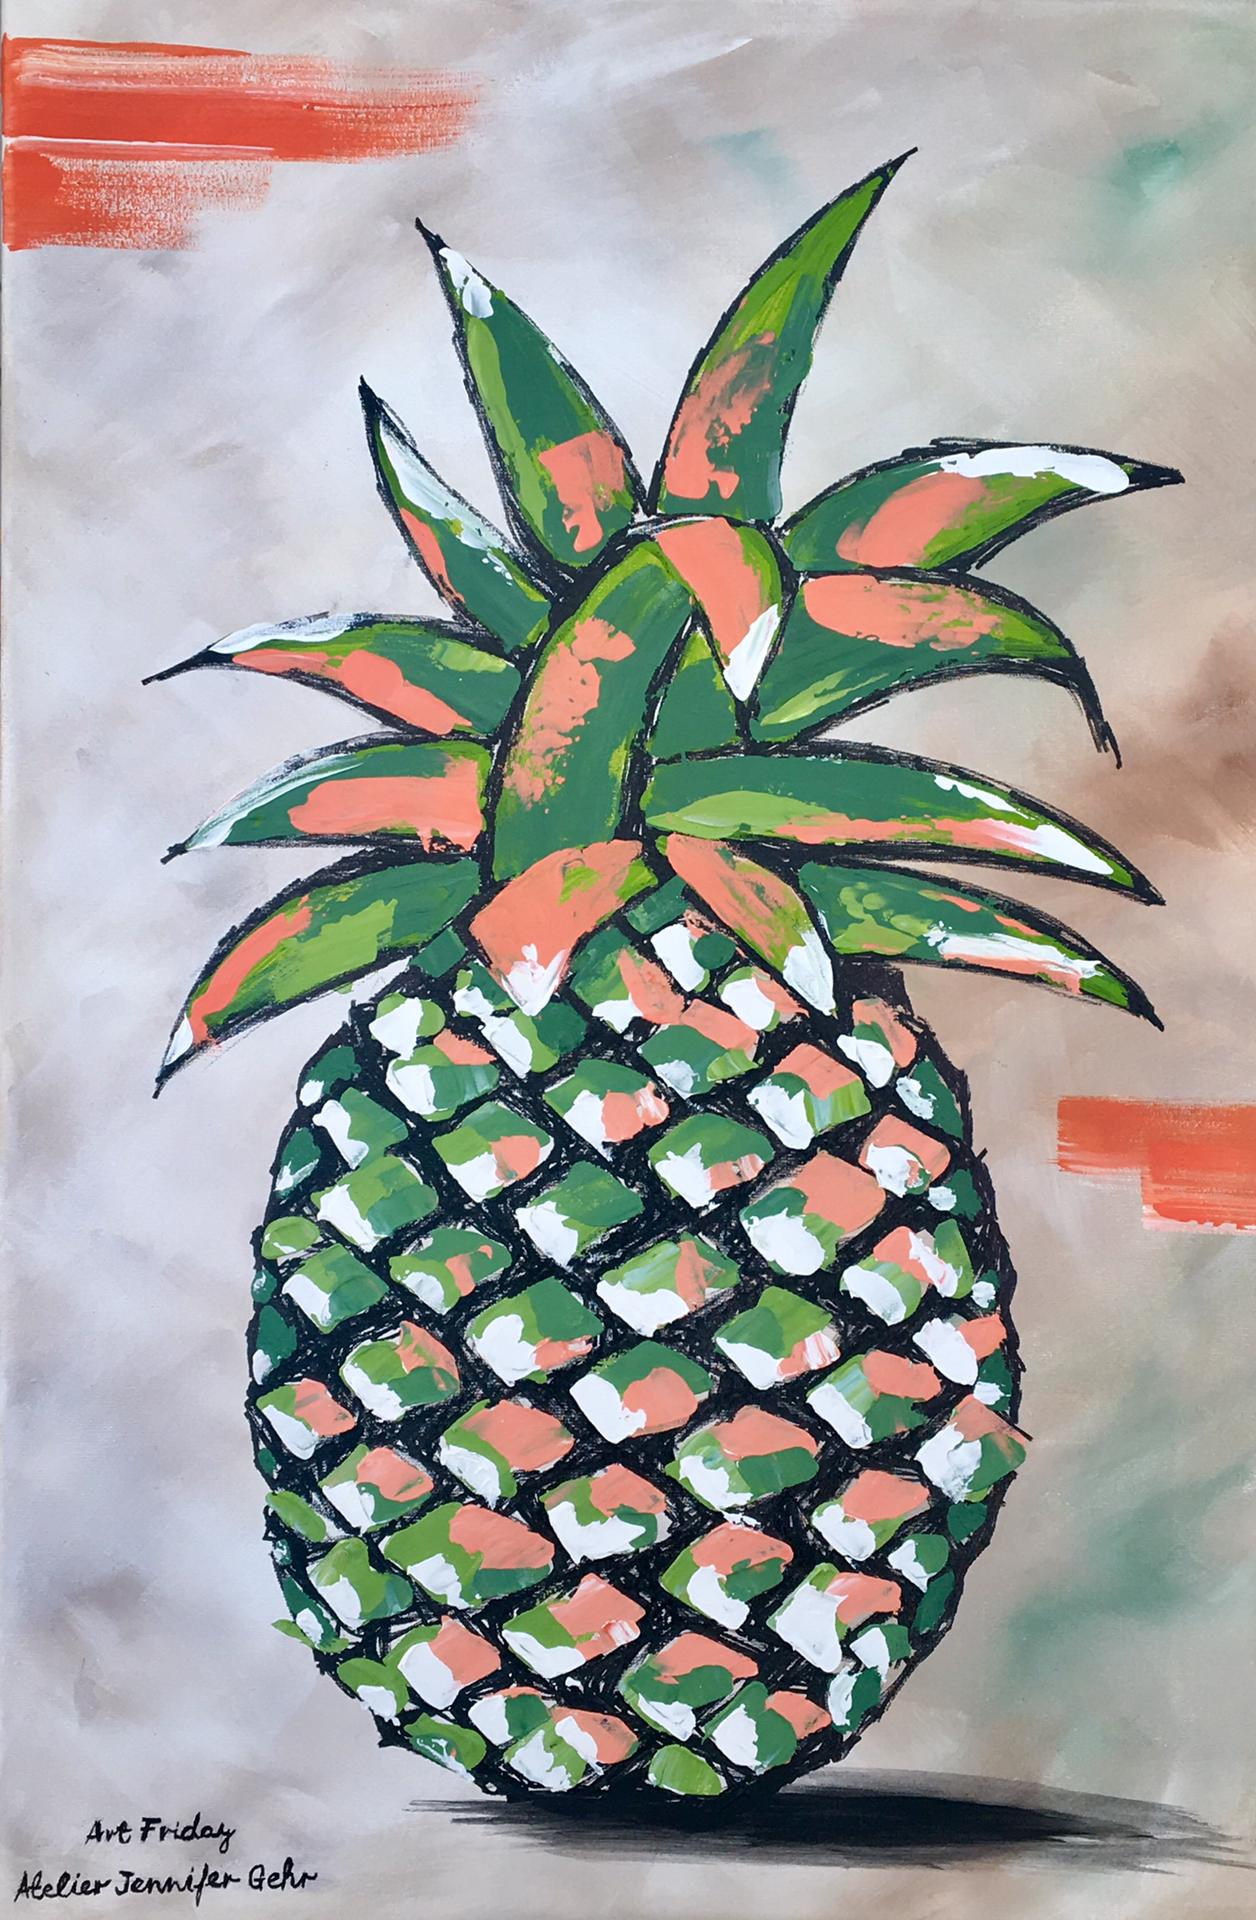 Art Friday Ananas Jennifer Gehr